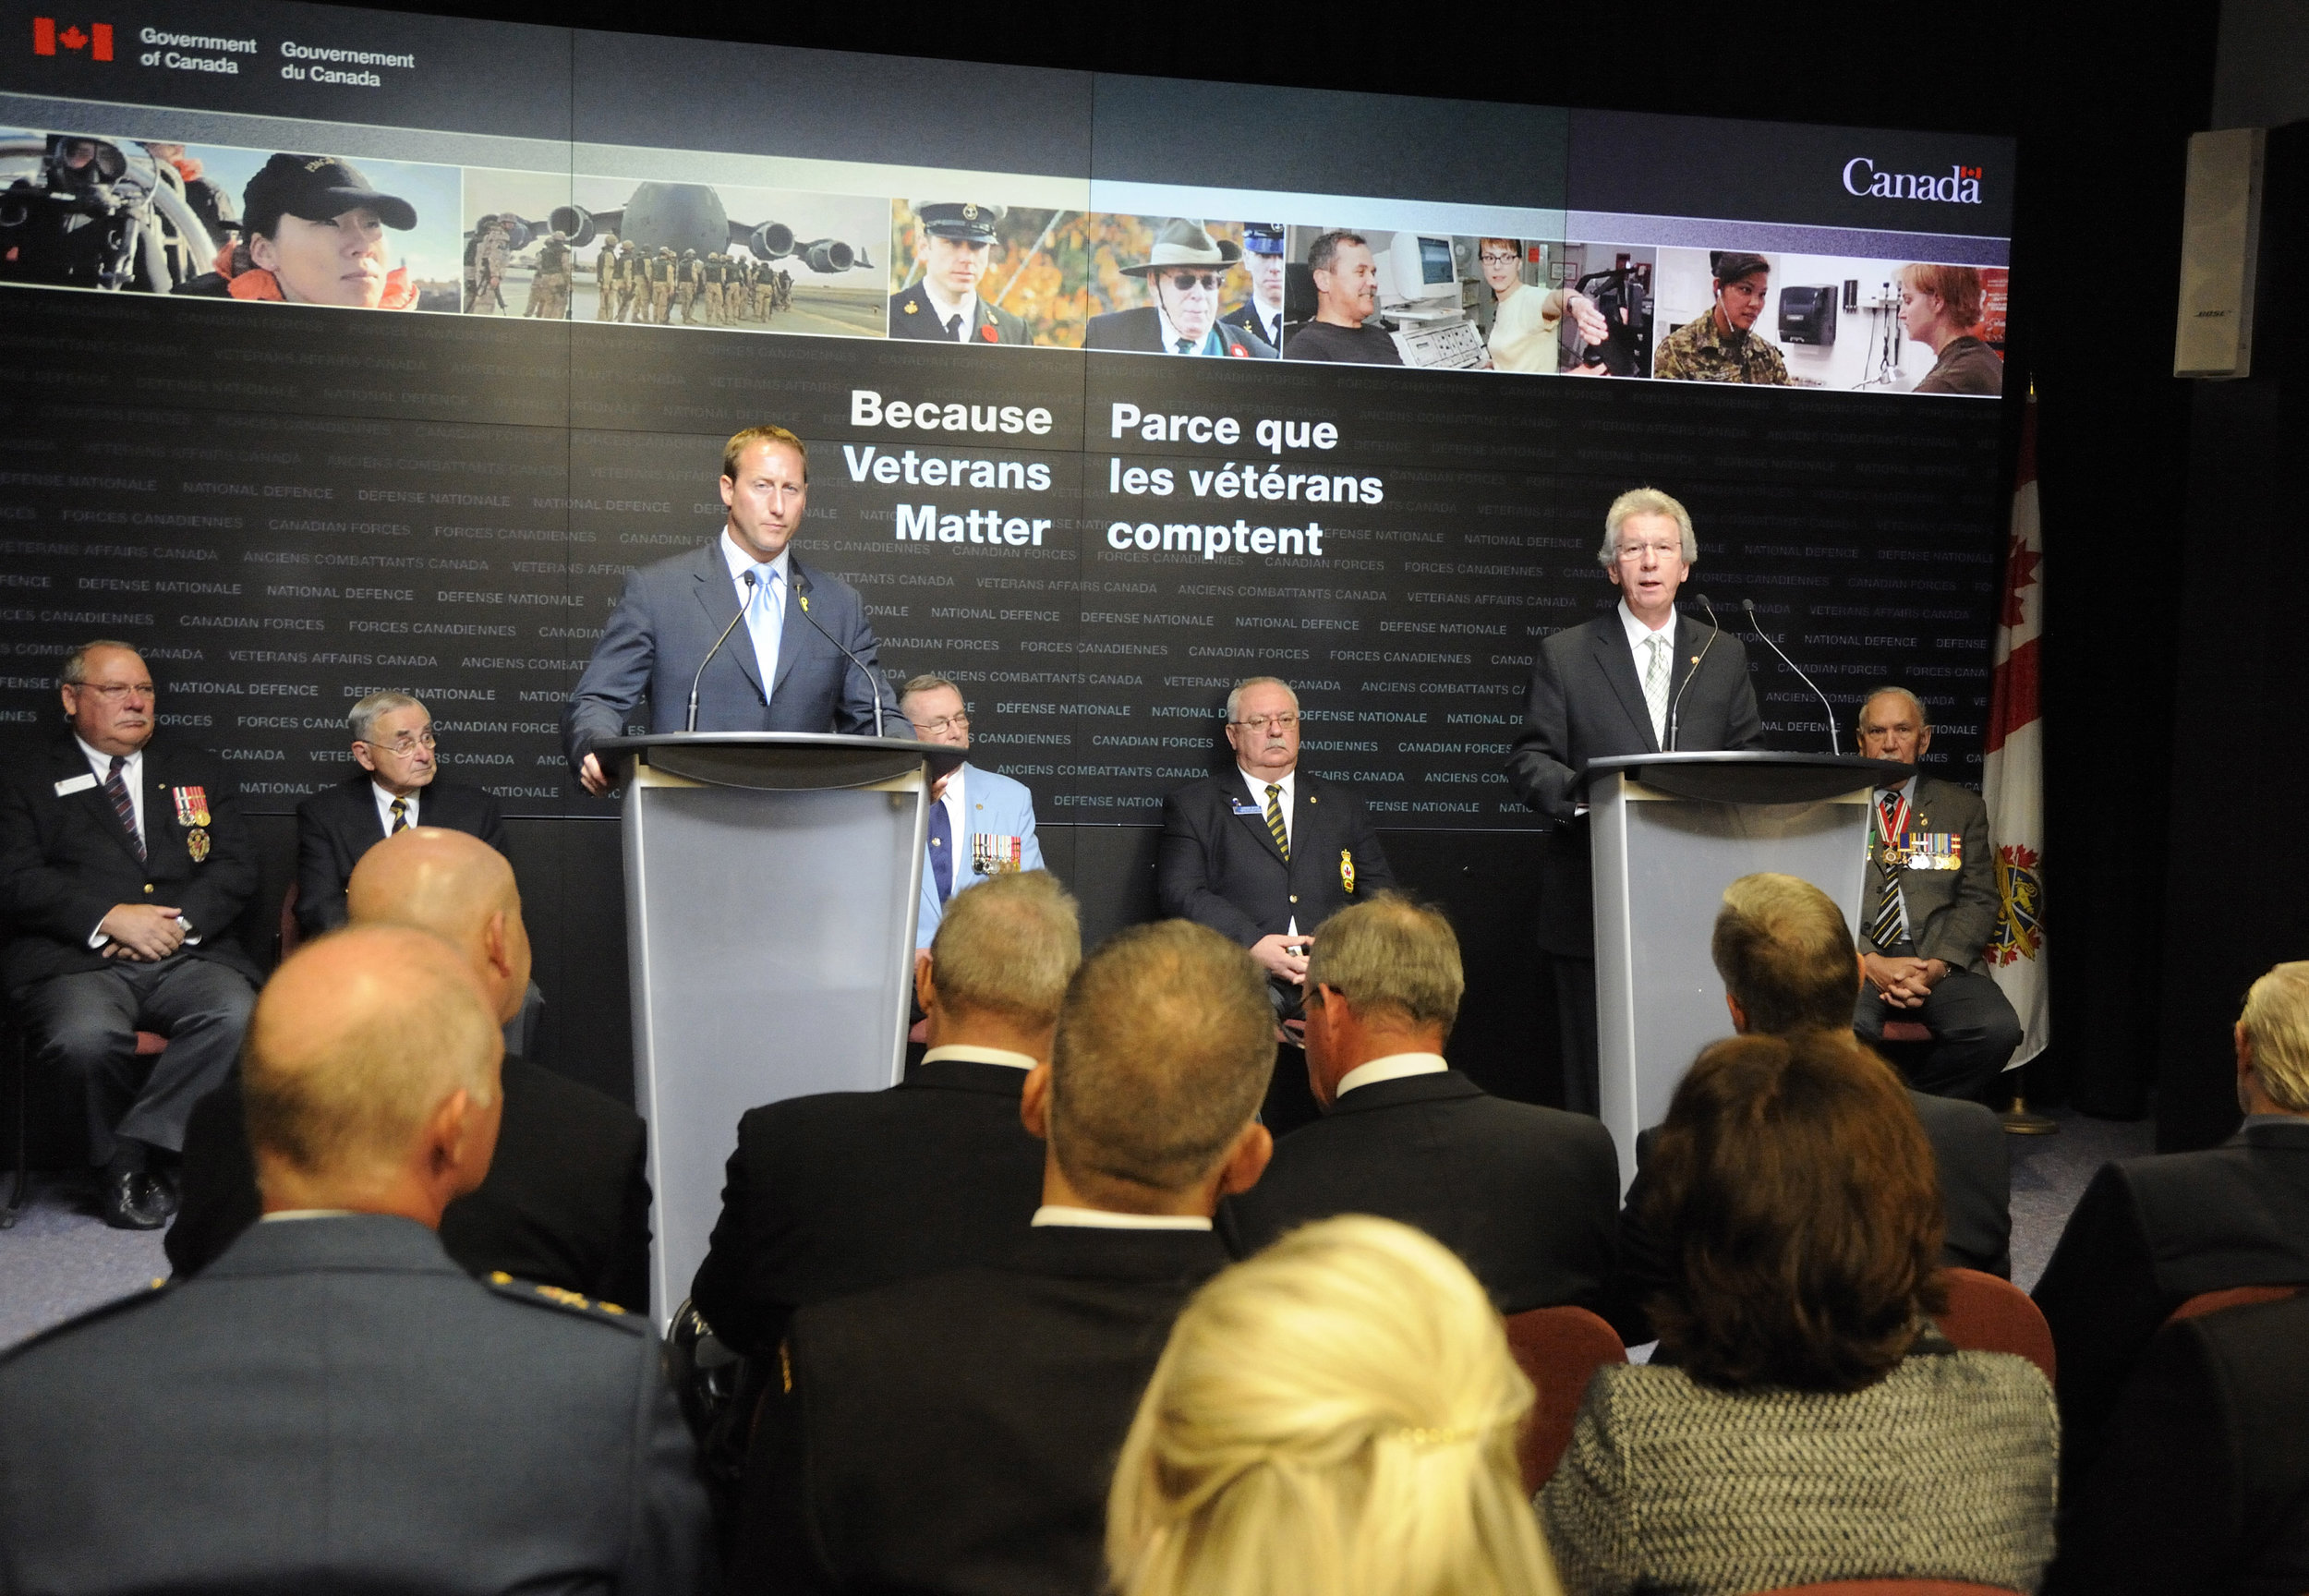 In September 2010, then MND Peter MacKay and then MVA Jean-Pierre Blackburn announced that the Government of Canada would allocate $52.5 million over five years in additional support to establish a legacy of care for seriously injured Canadian Forces personnel and their families. However, the legislative amendments to deal with shortcomings identified in the New Veterans Charter have yet to be fully ratified. (dnd)